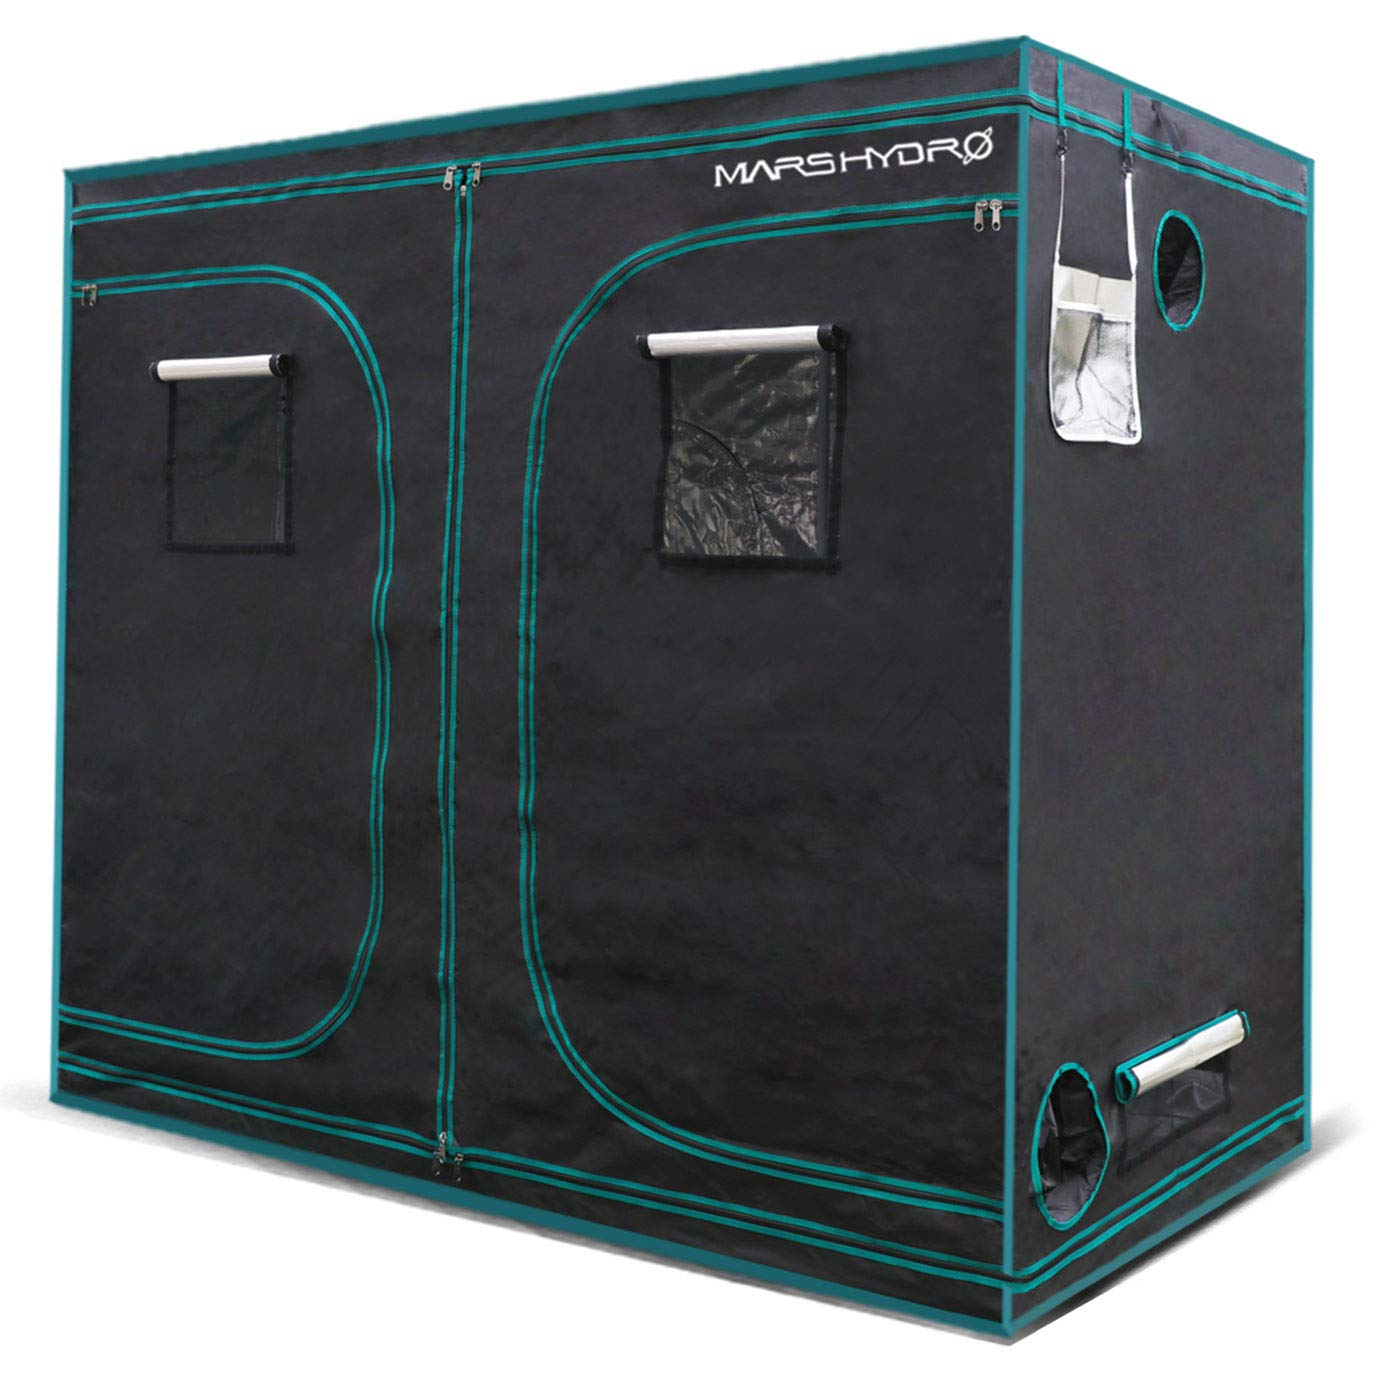 MarsHydro Grow Tent 96″x48″x78″ or 8'x4'x6.5 Indoor Mylar Hydroponic 1680D Review